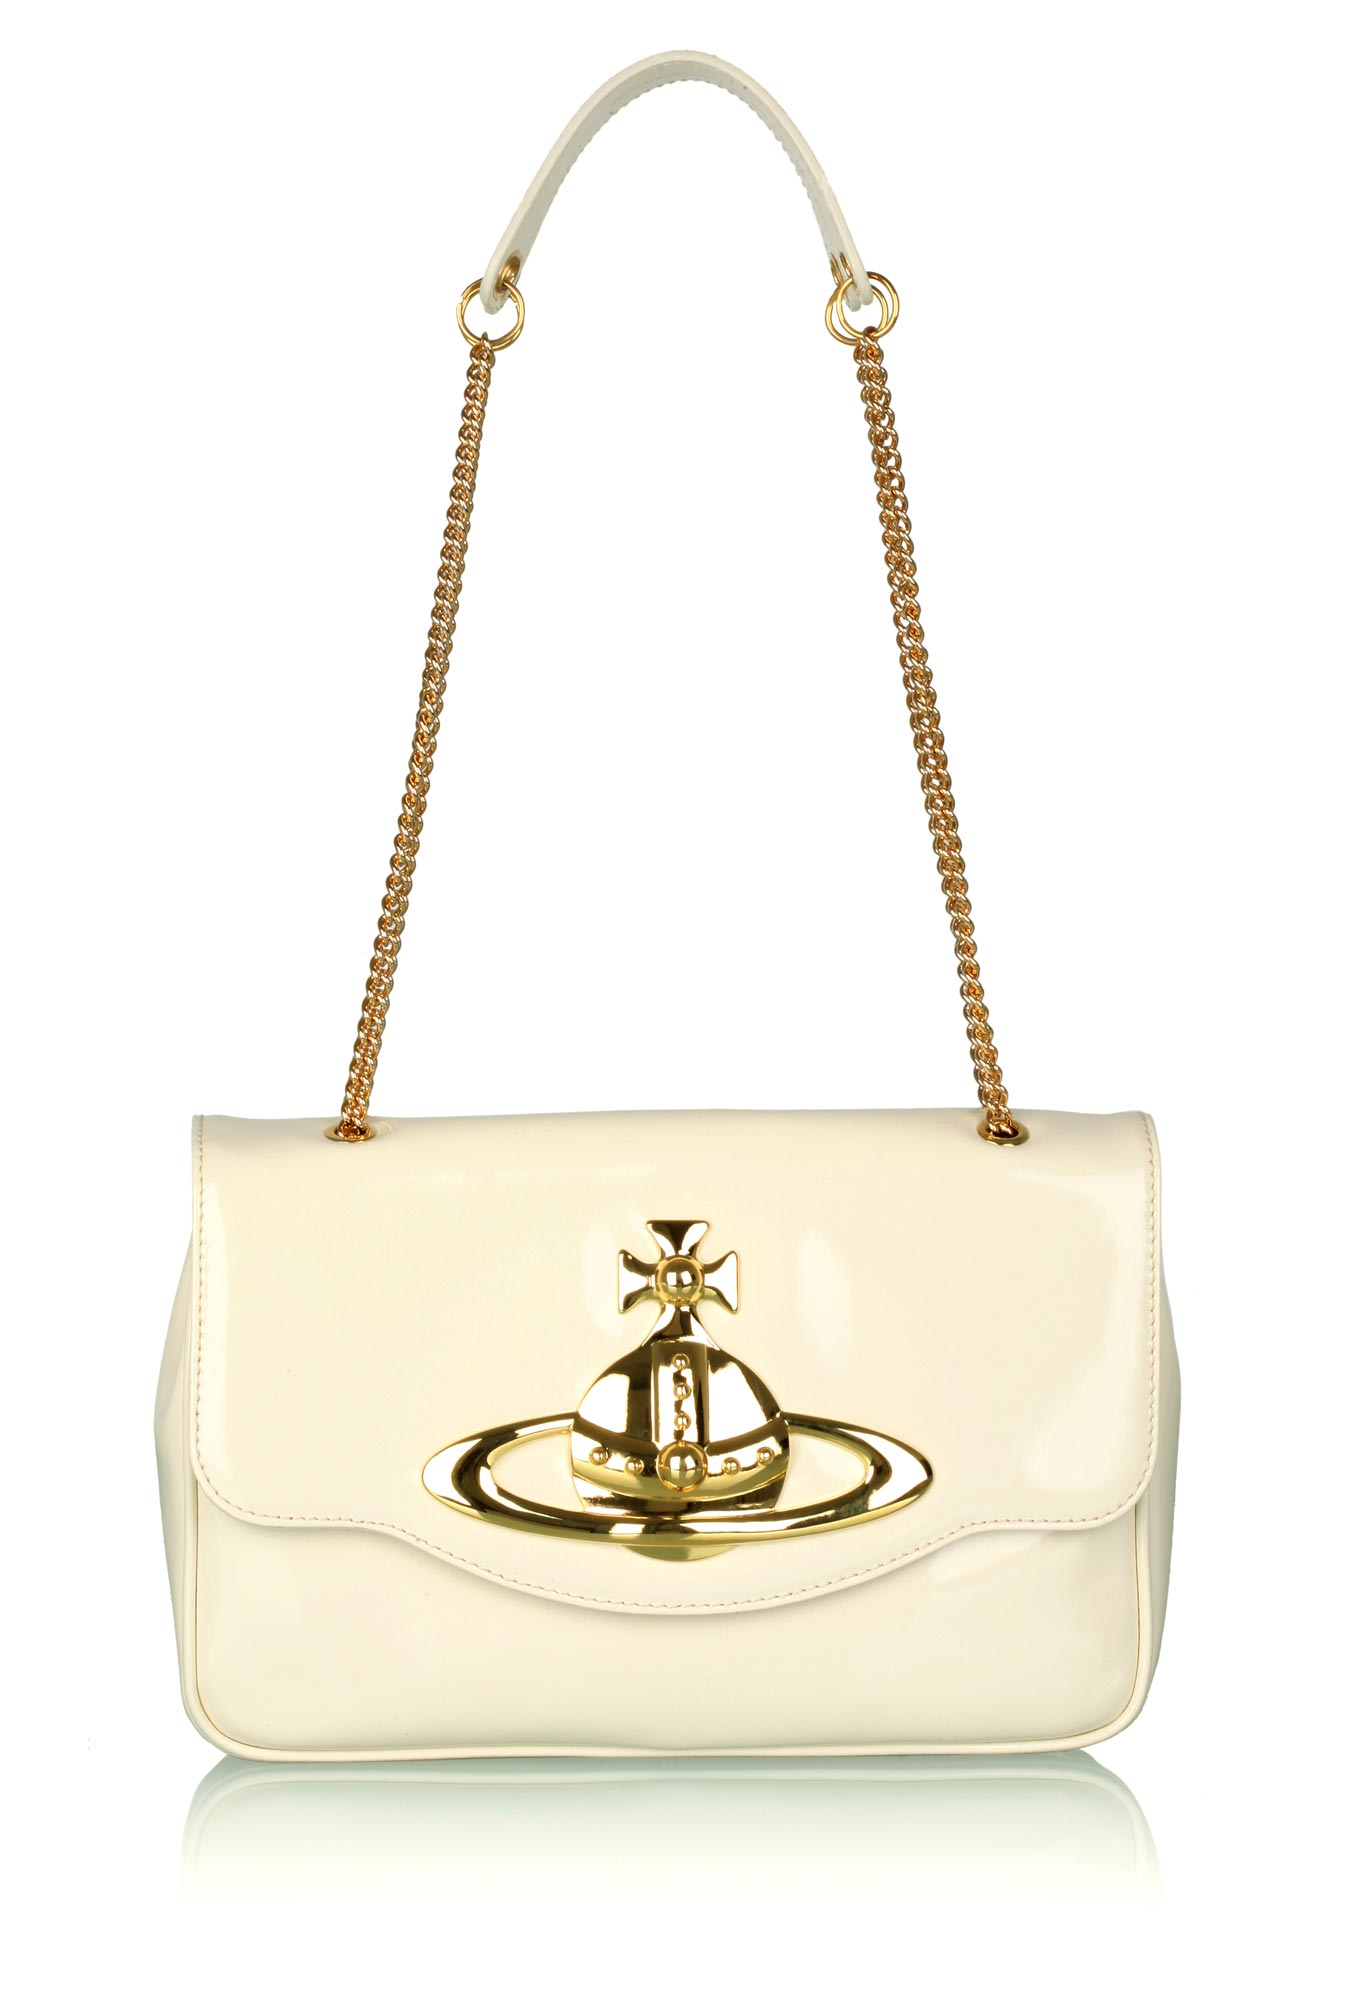 Catch of the day: Vivienne Westwood bag